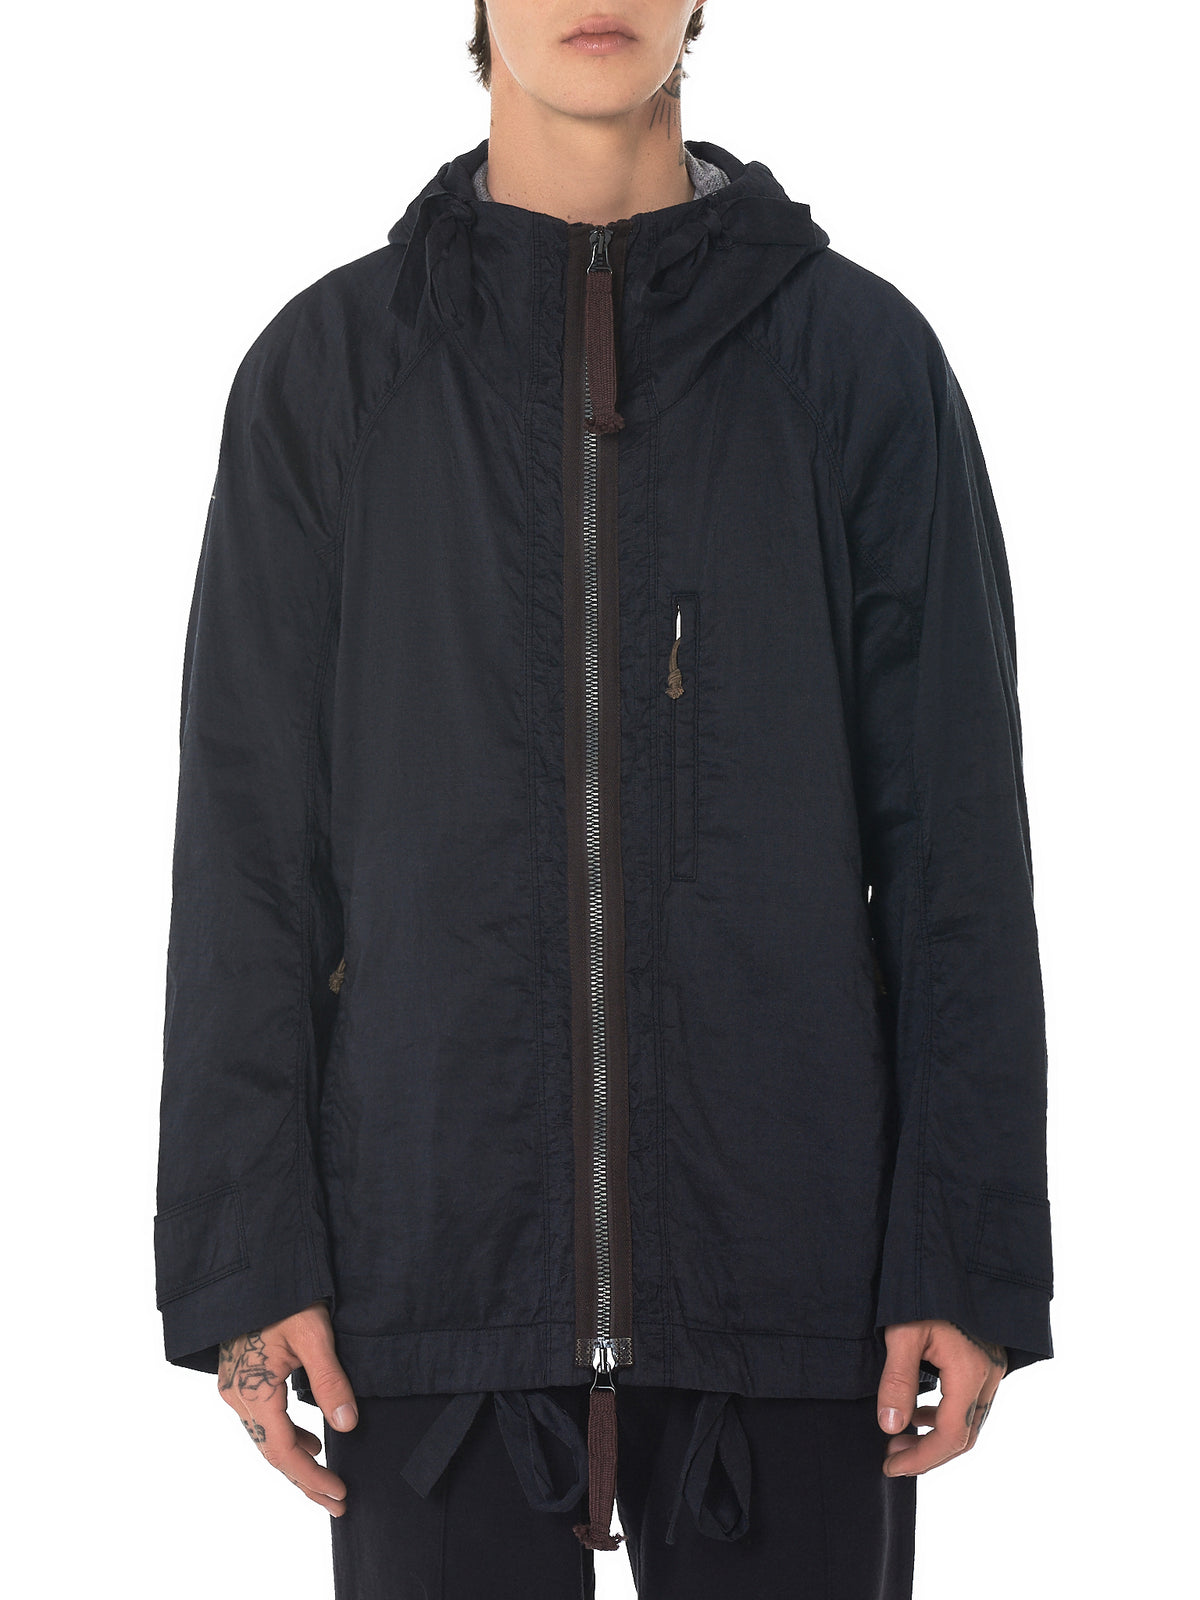 Ziggy Chen Hooded Jacket - Hlorenzo Front